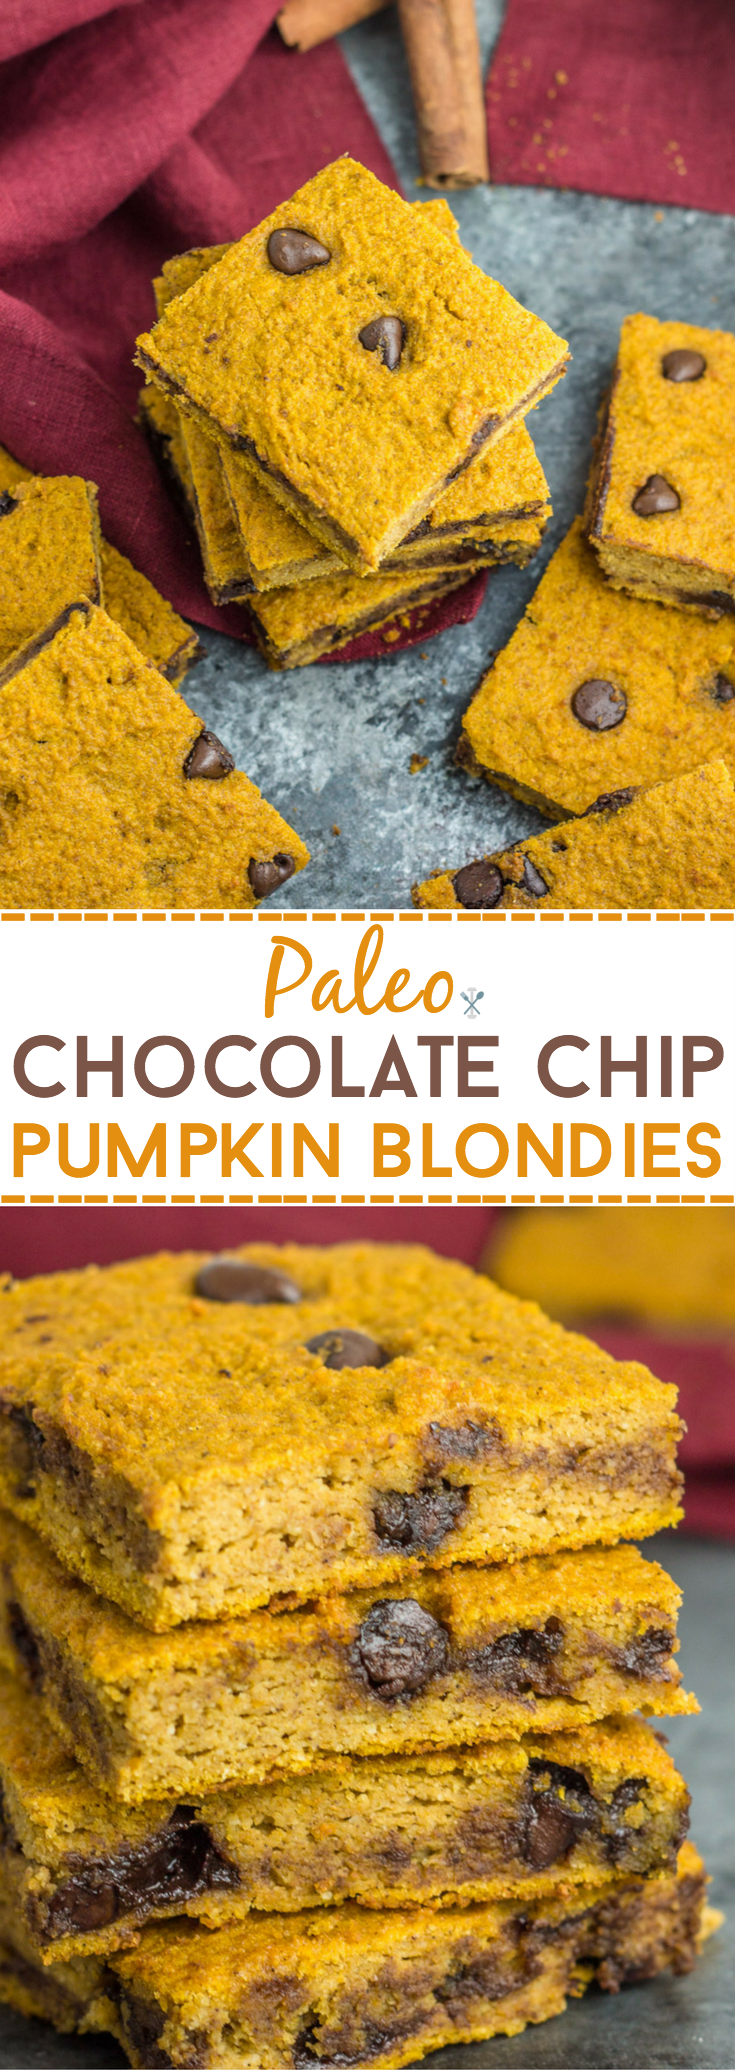 These gluten free, healthy paleo chocolate chip pumpkin blondies are a healthier alternative to traditional pumpkin baked goods. Refined sugar free, simple ingredients, and delicious!